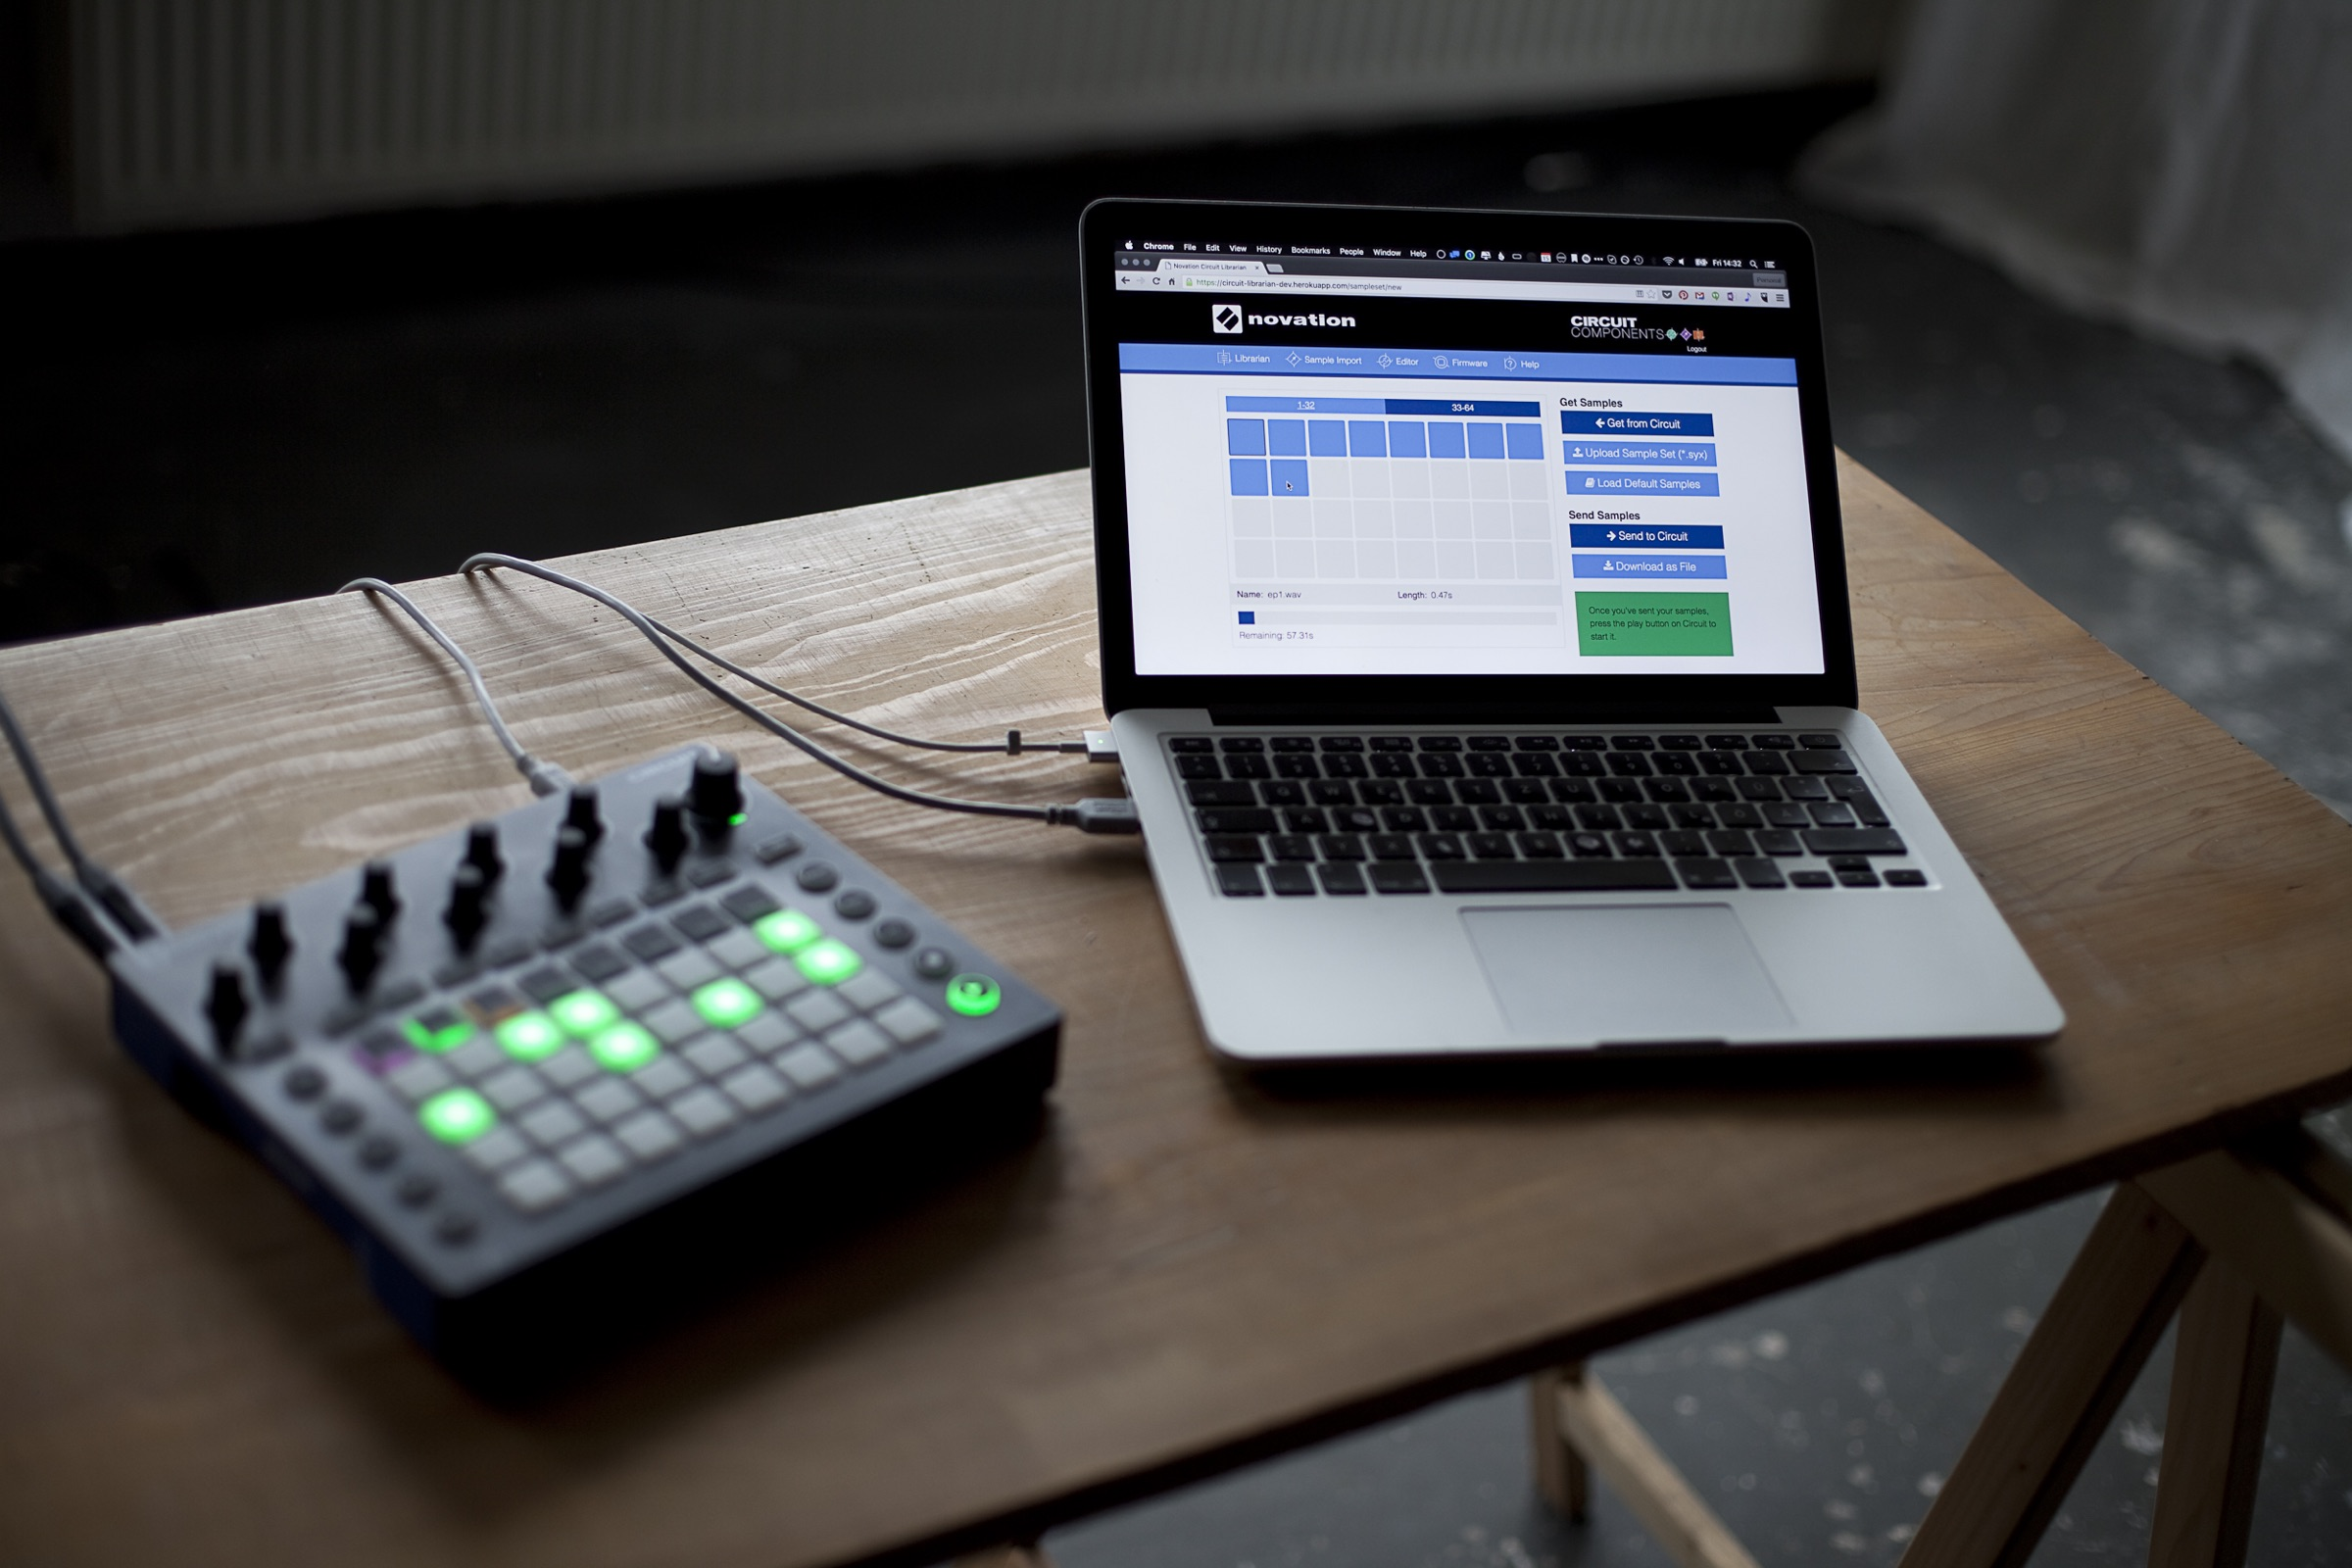 Make Novation Circuit your own, with updates, browser tools - CDM ...